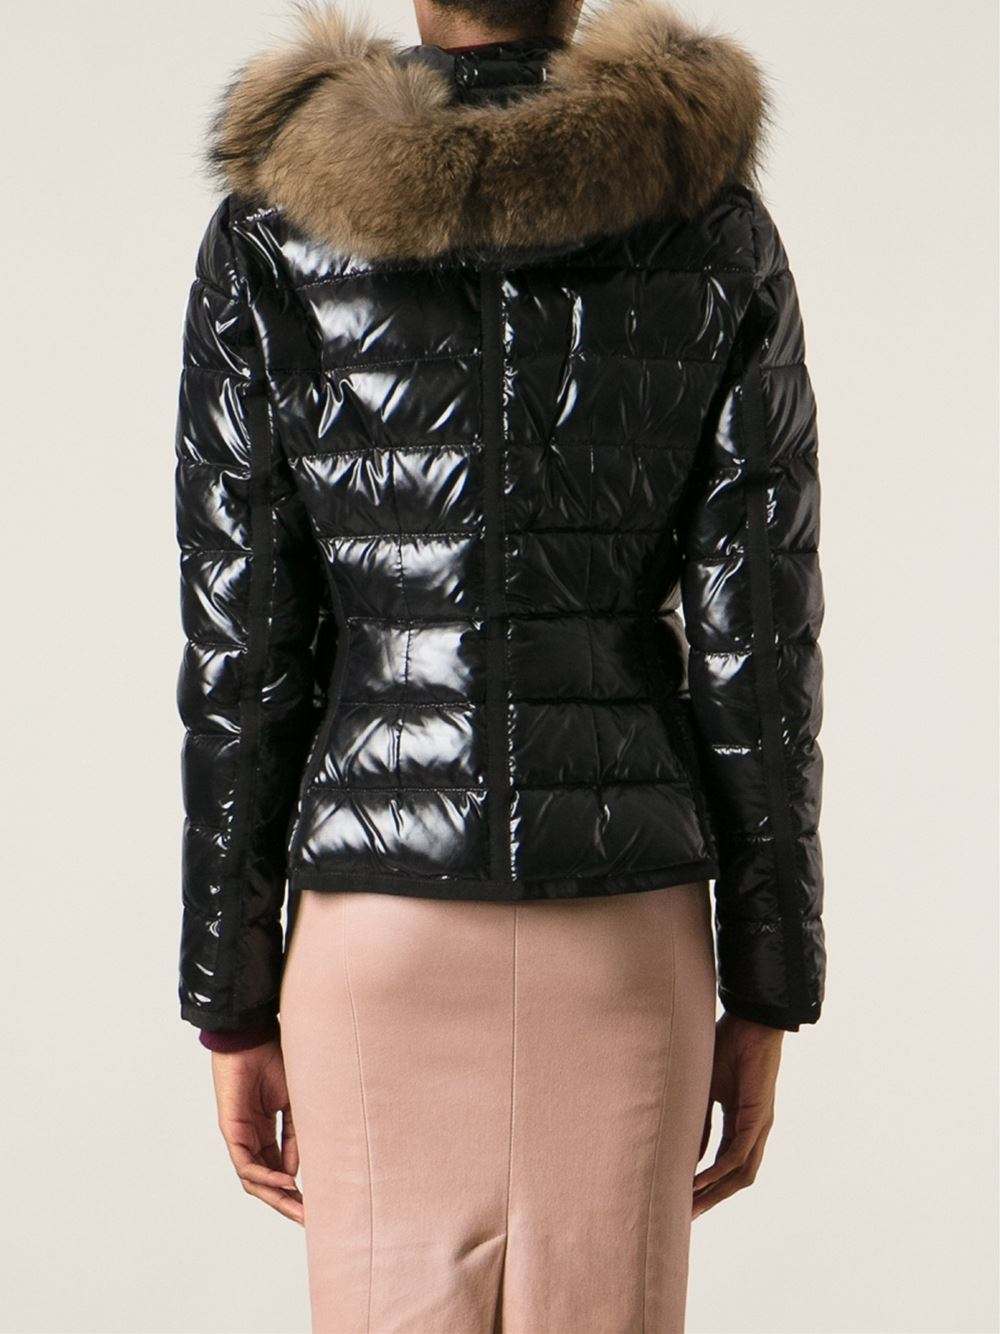 moncler quilted jacket woman